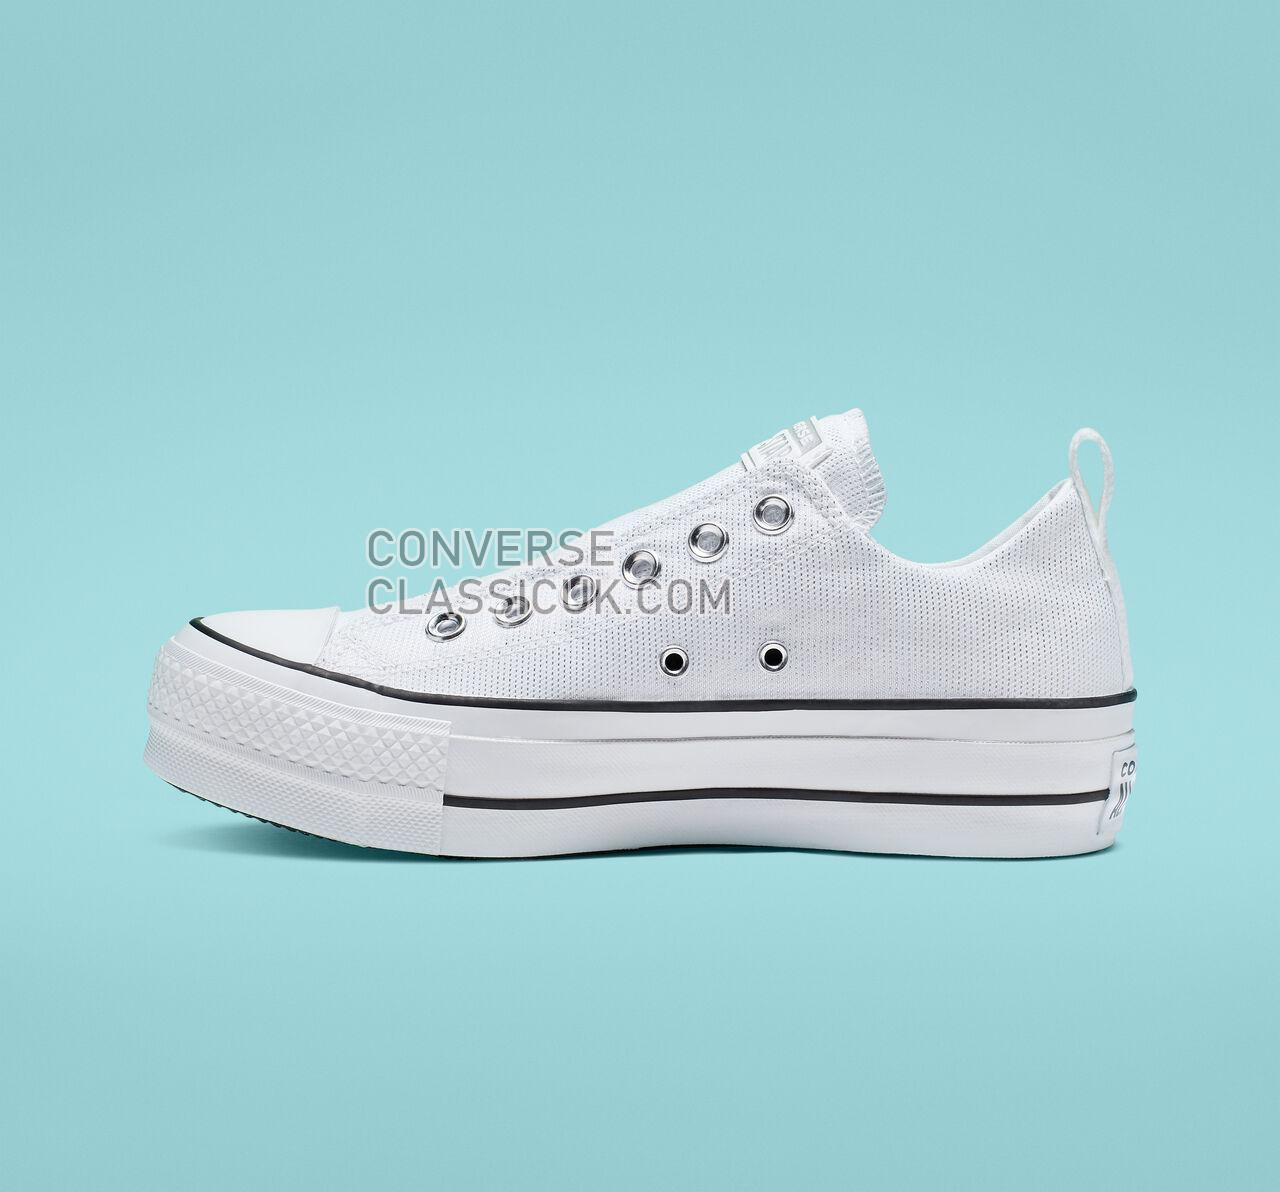 Converse Chuck Taylor All Star Final Frontier Platform Slip Womens 565241C White/White/Black Shoes